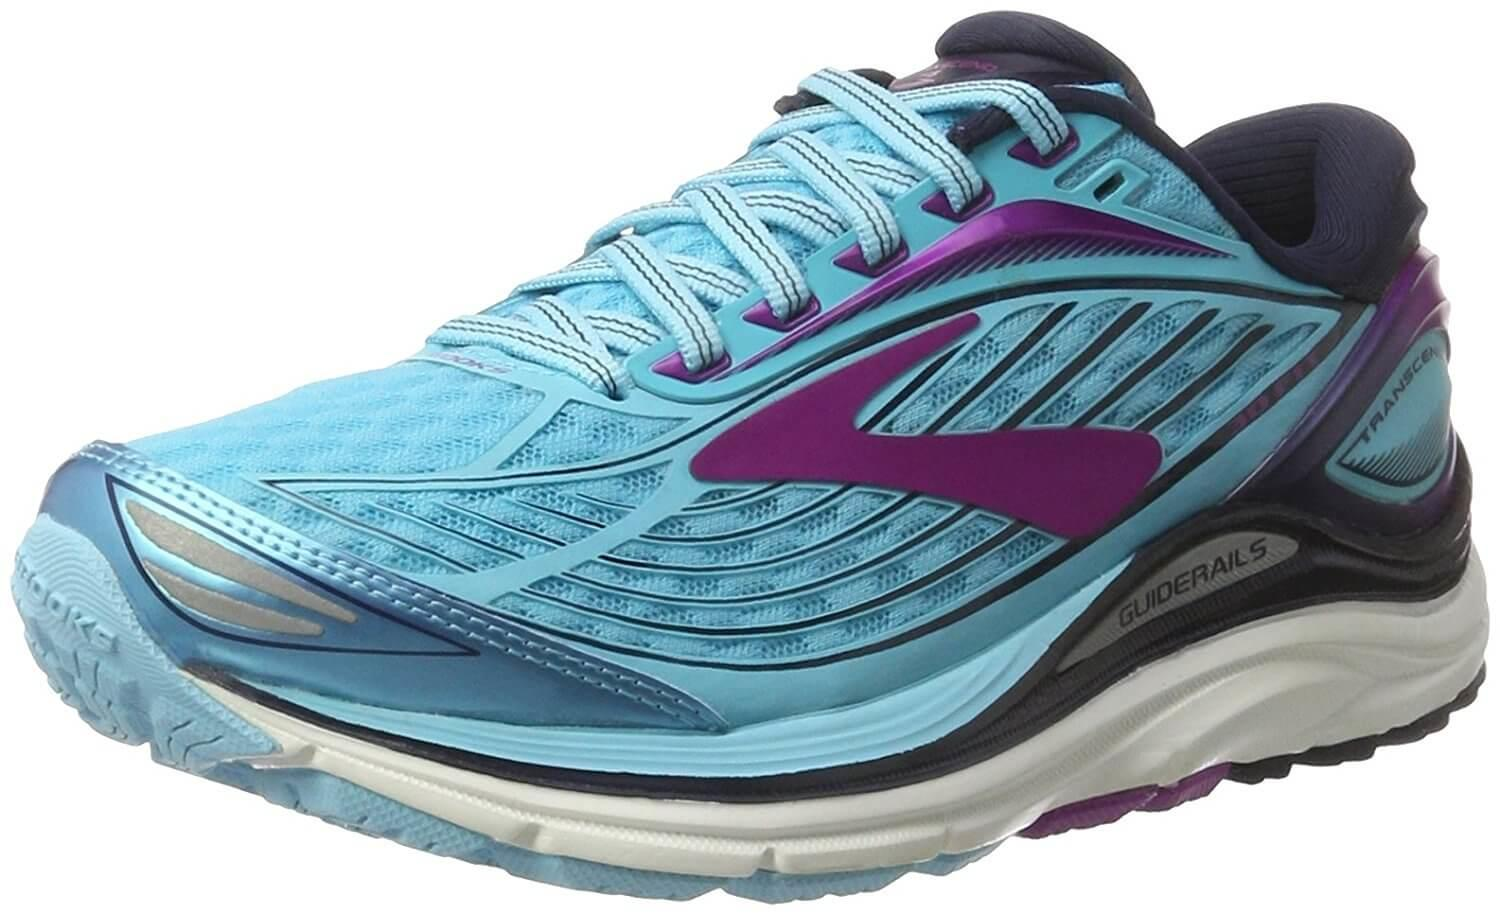 A three quarter view of the Brooks Transcend 4 running shoe